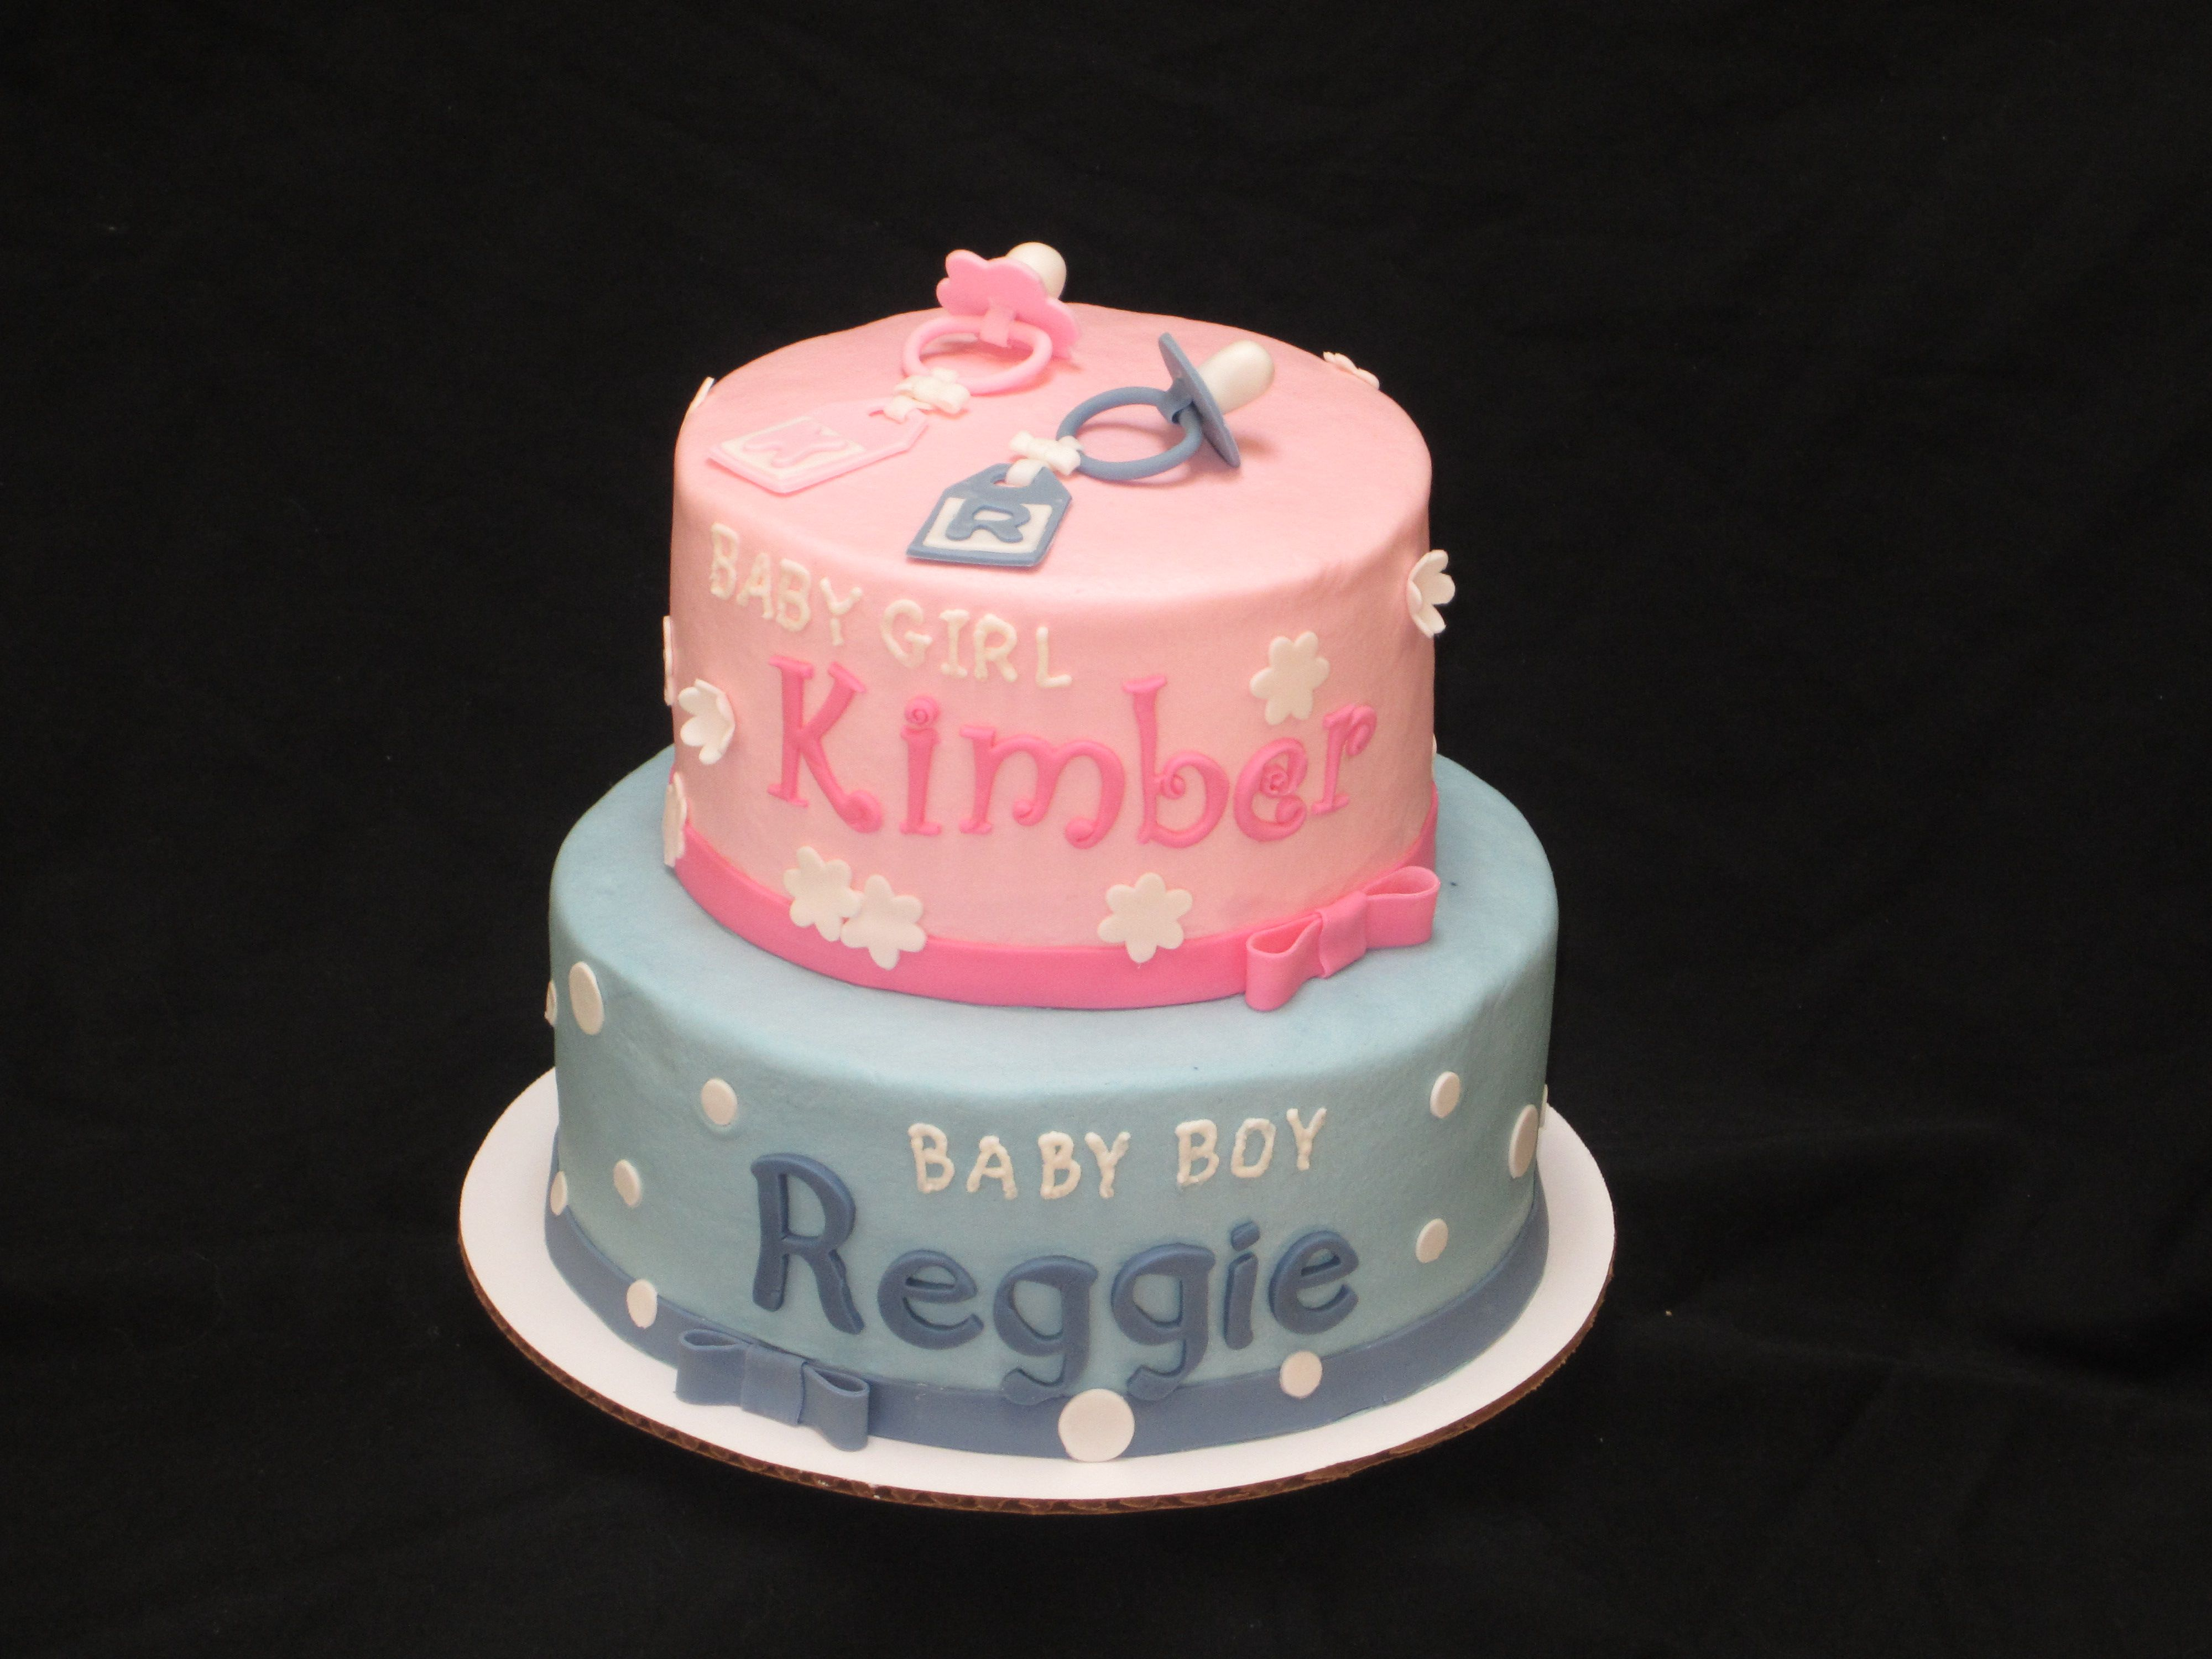 Baby shower cake for boy/girl twins